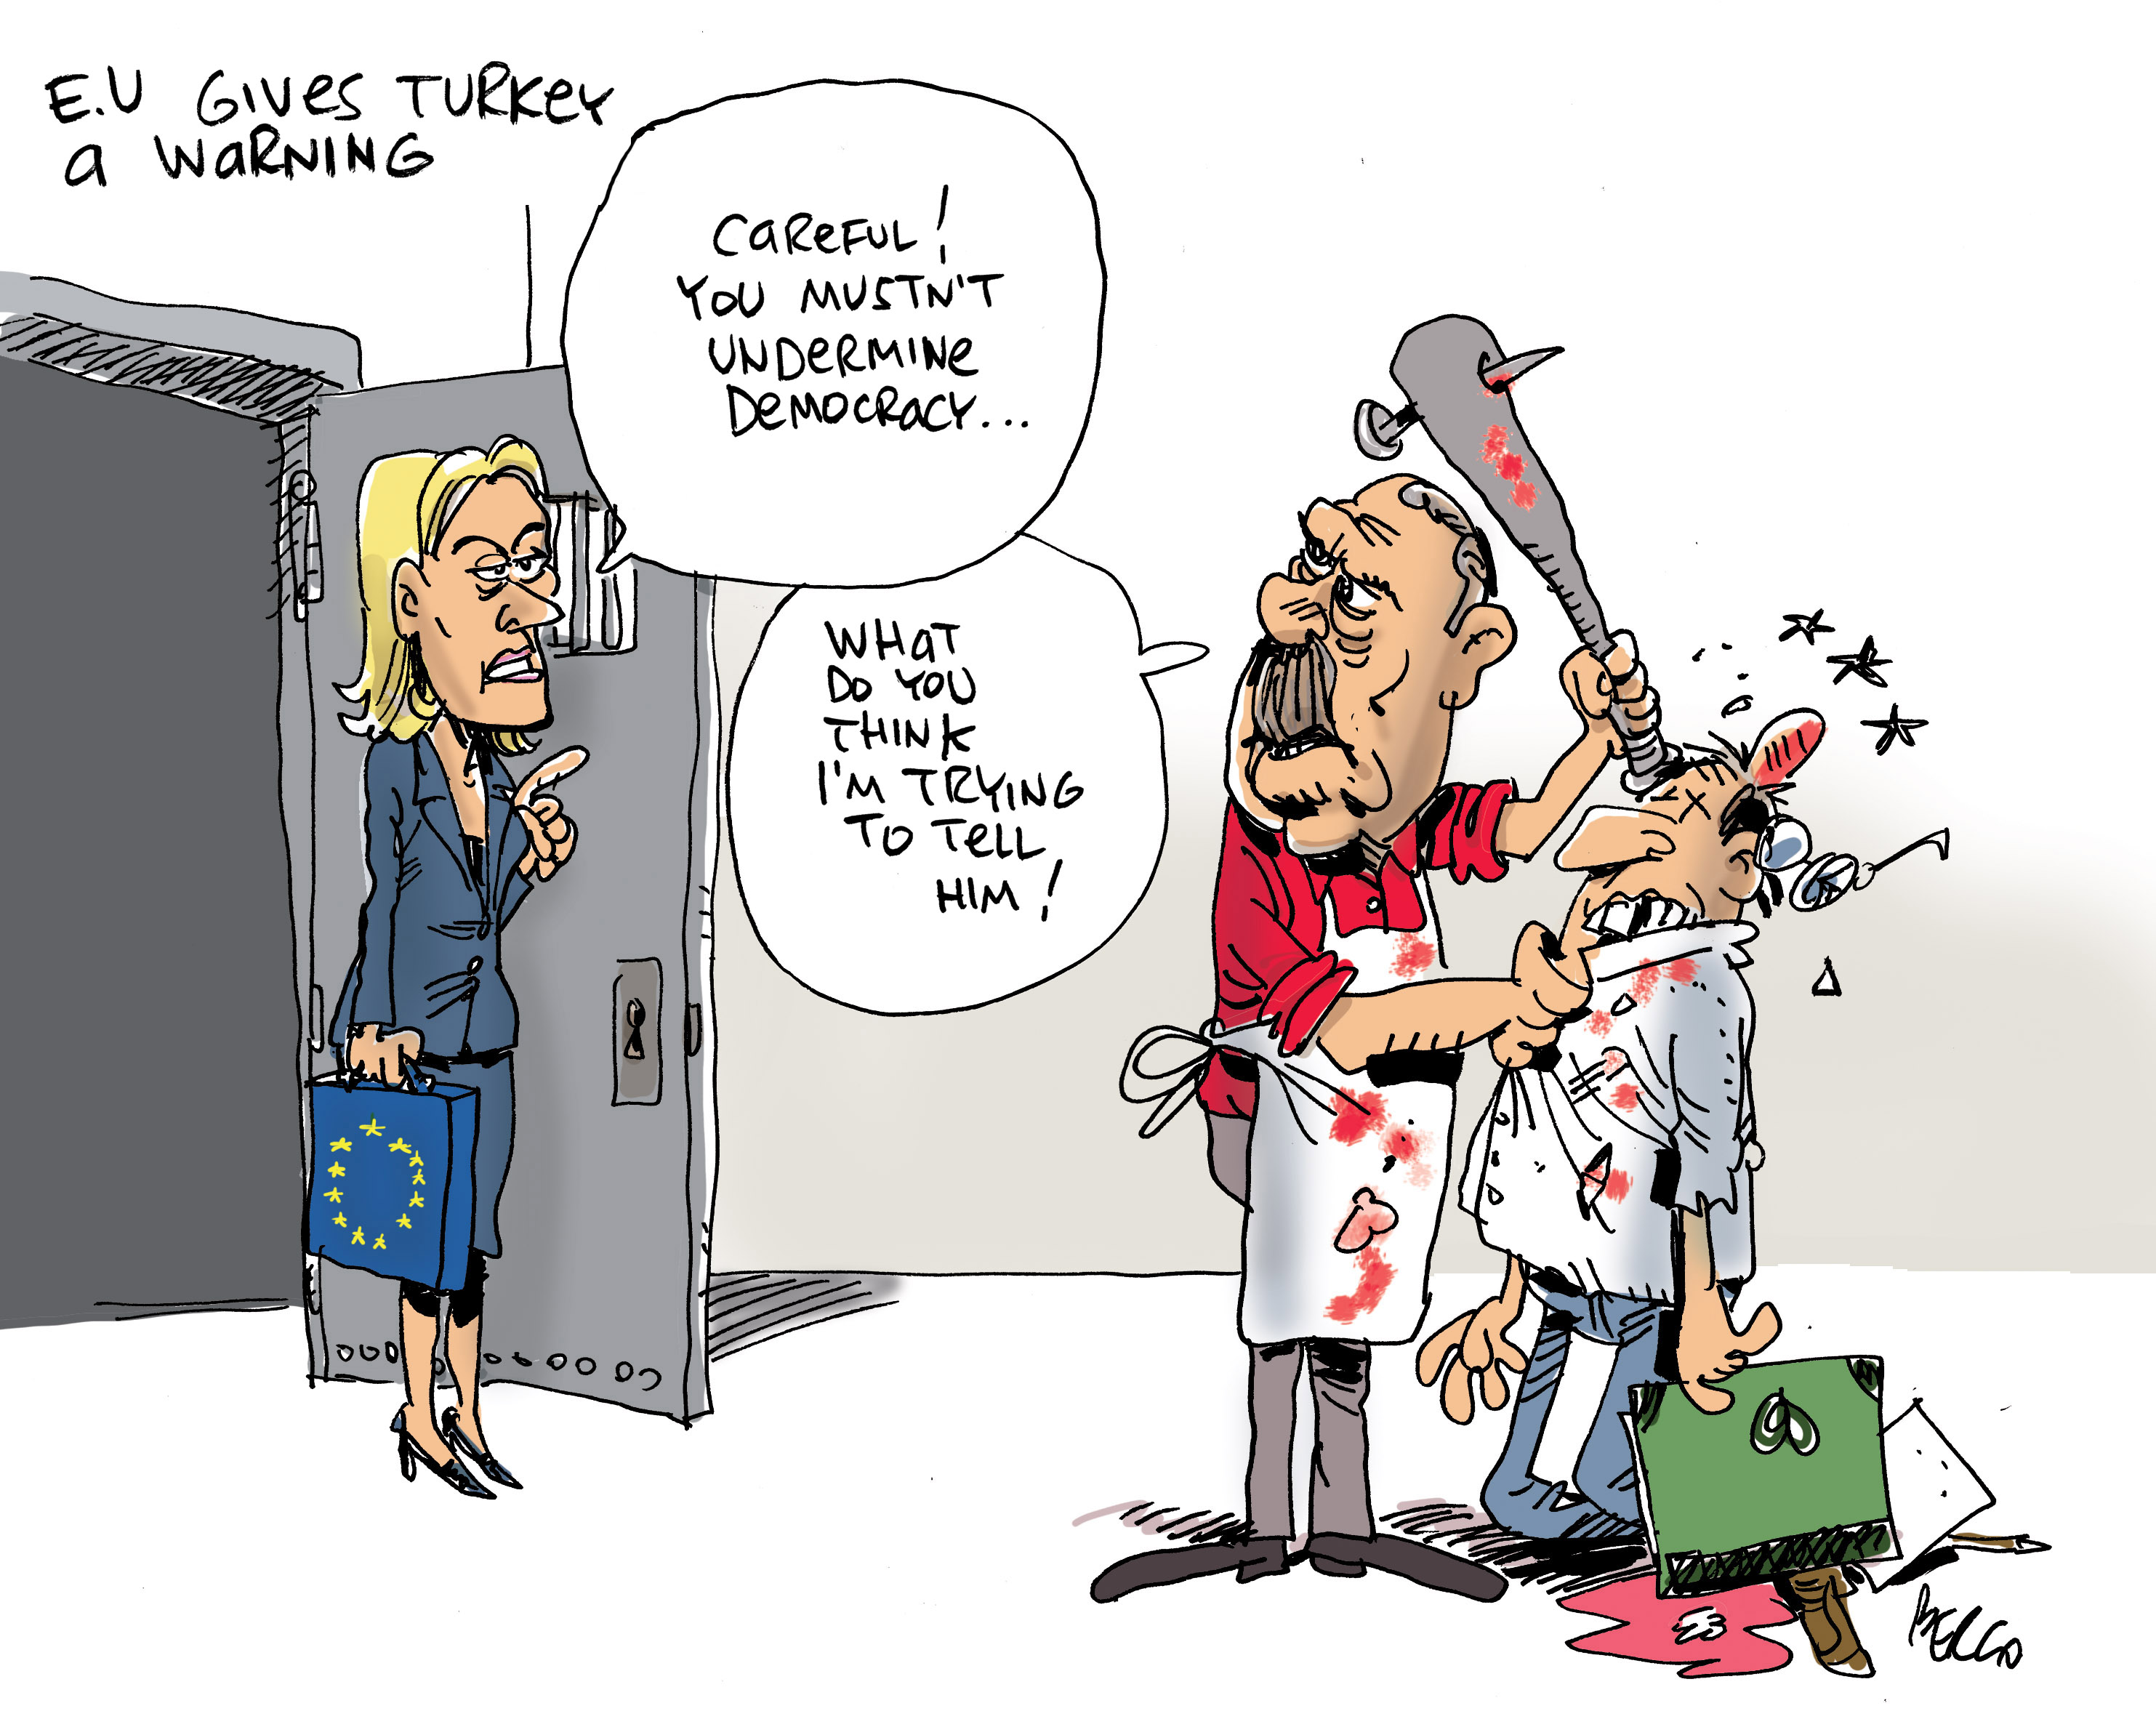 turkey-cartoon-en